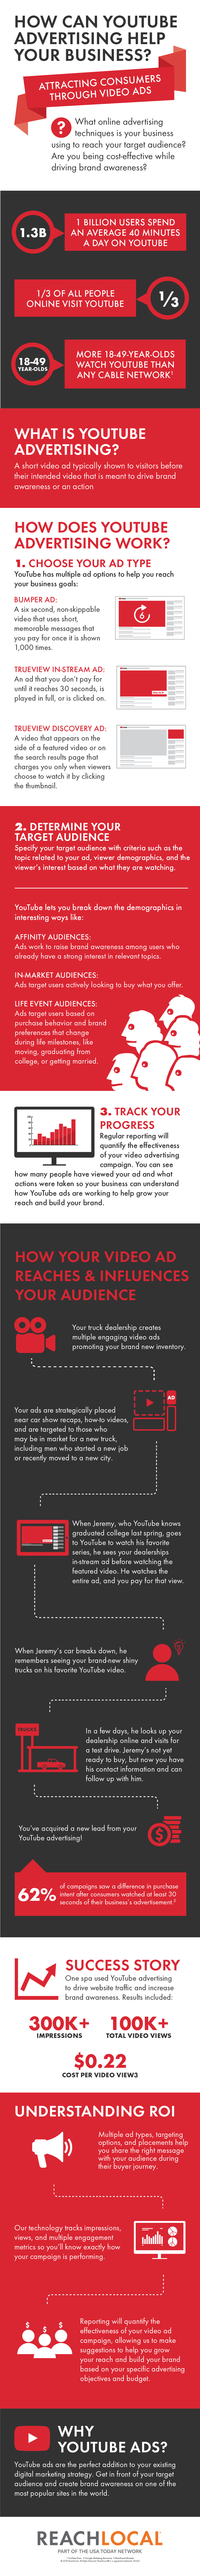 ReachLocal Infographic: How Does YouTube Advertising Work for Local Businesses?